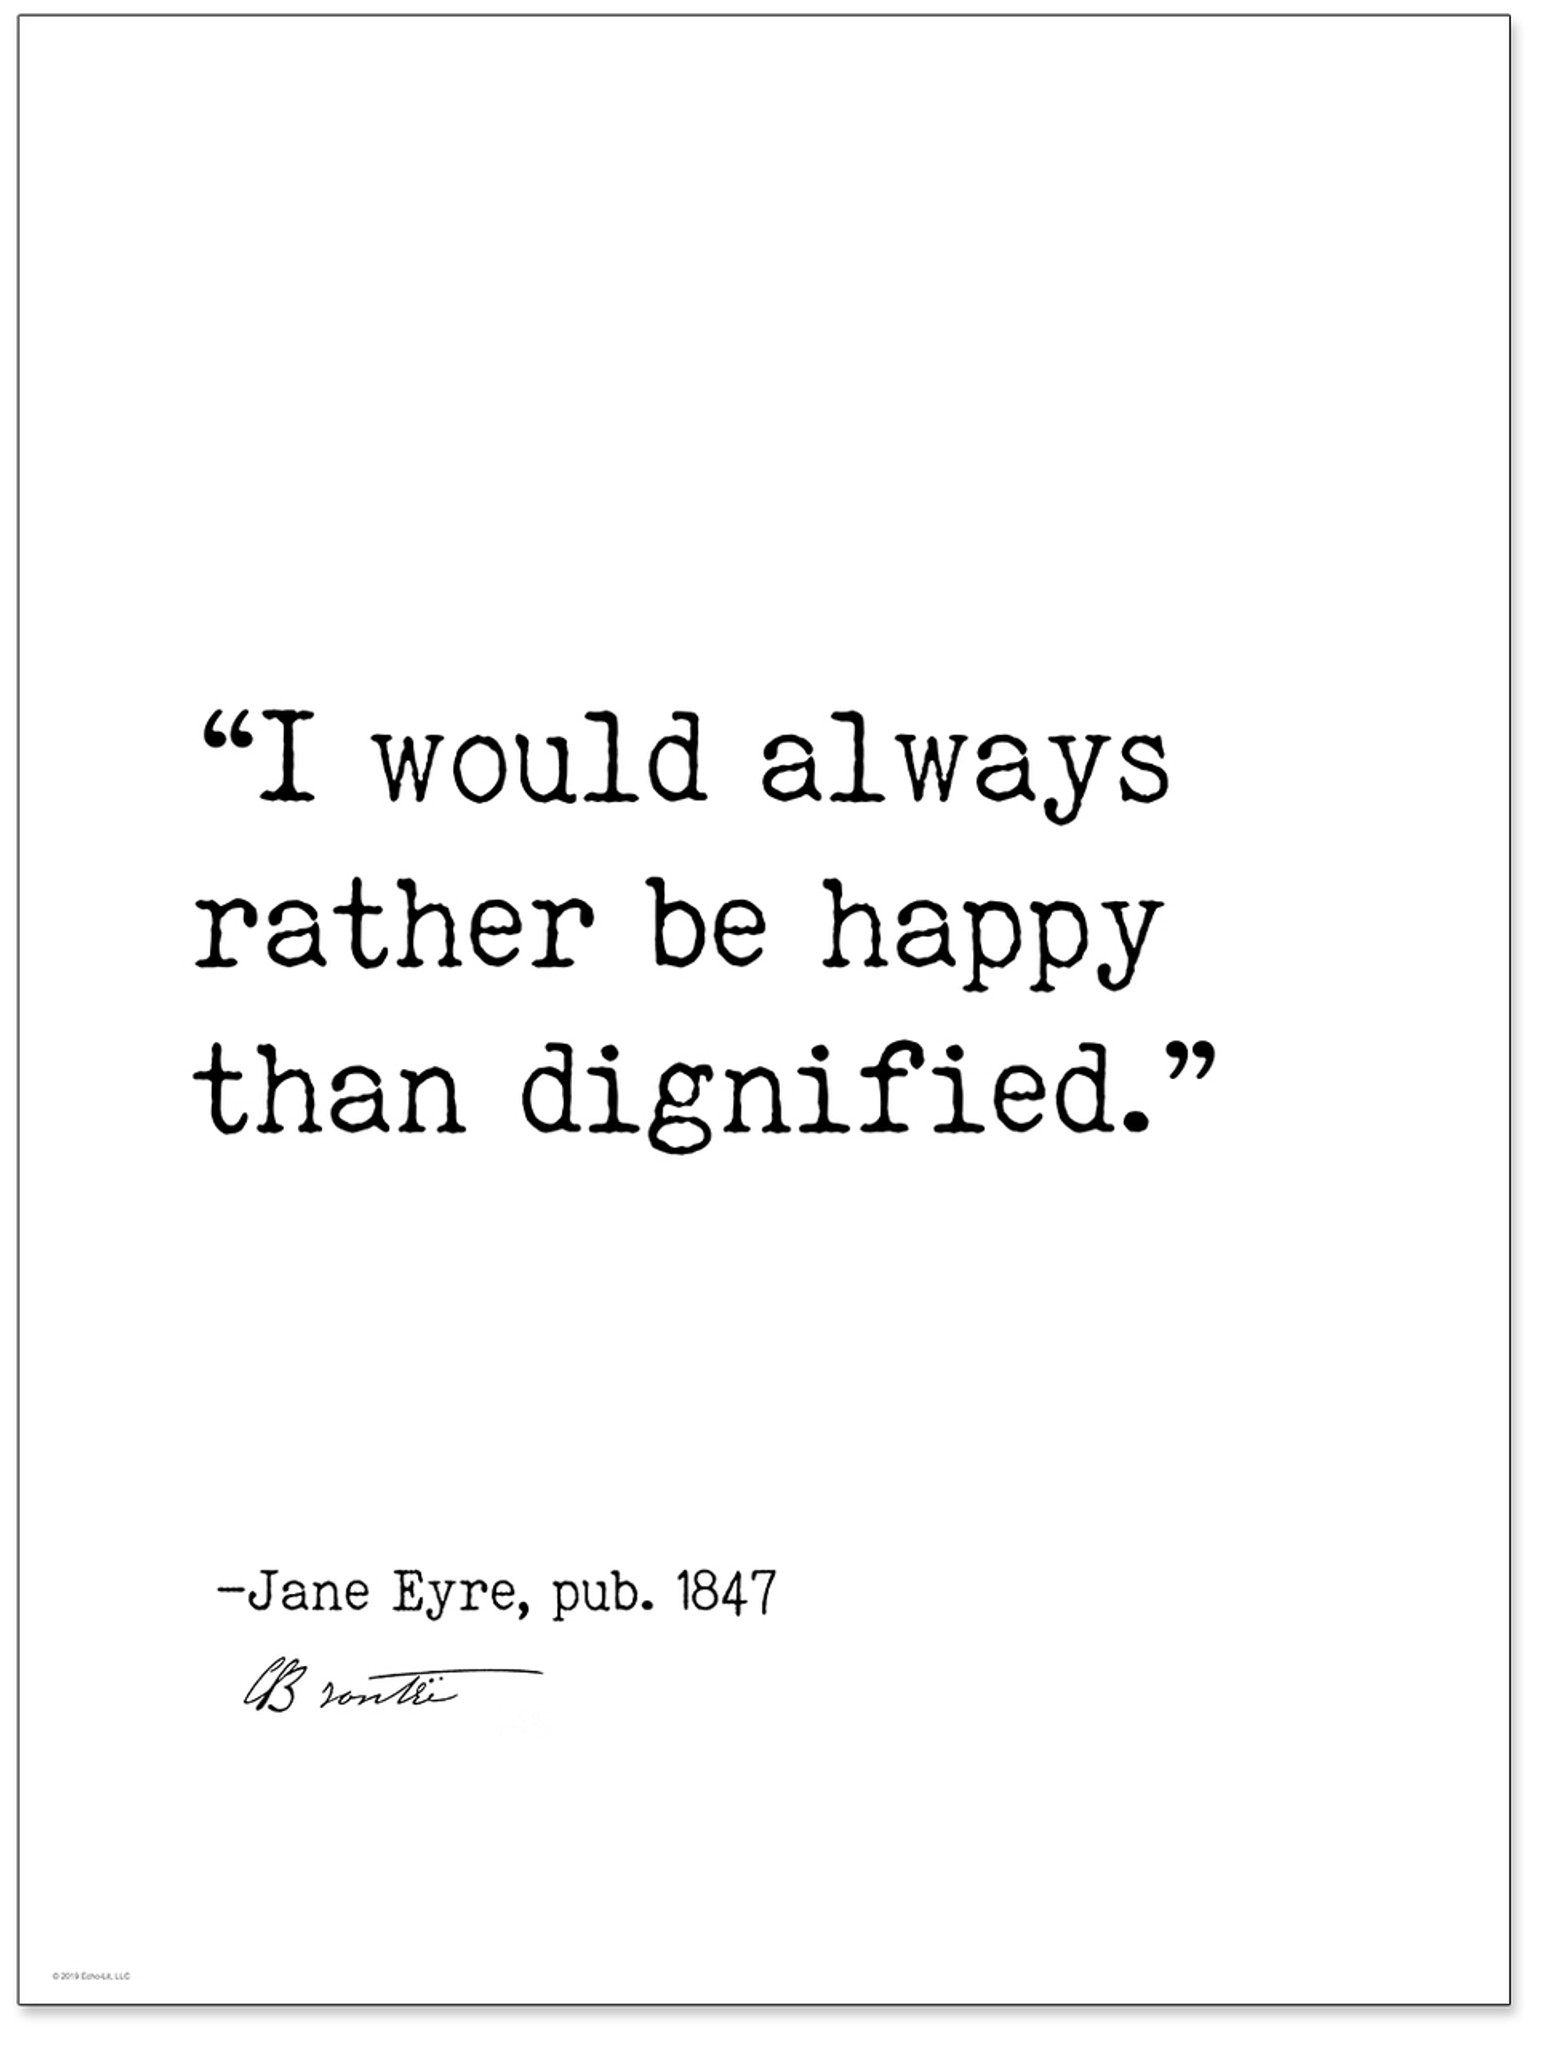 Rather Be Happy Than Dignified Charlotte Bronte Jane Eyre Author Signature Literary Quote Print Fine Art Paper Laminated Or Framed Multiple